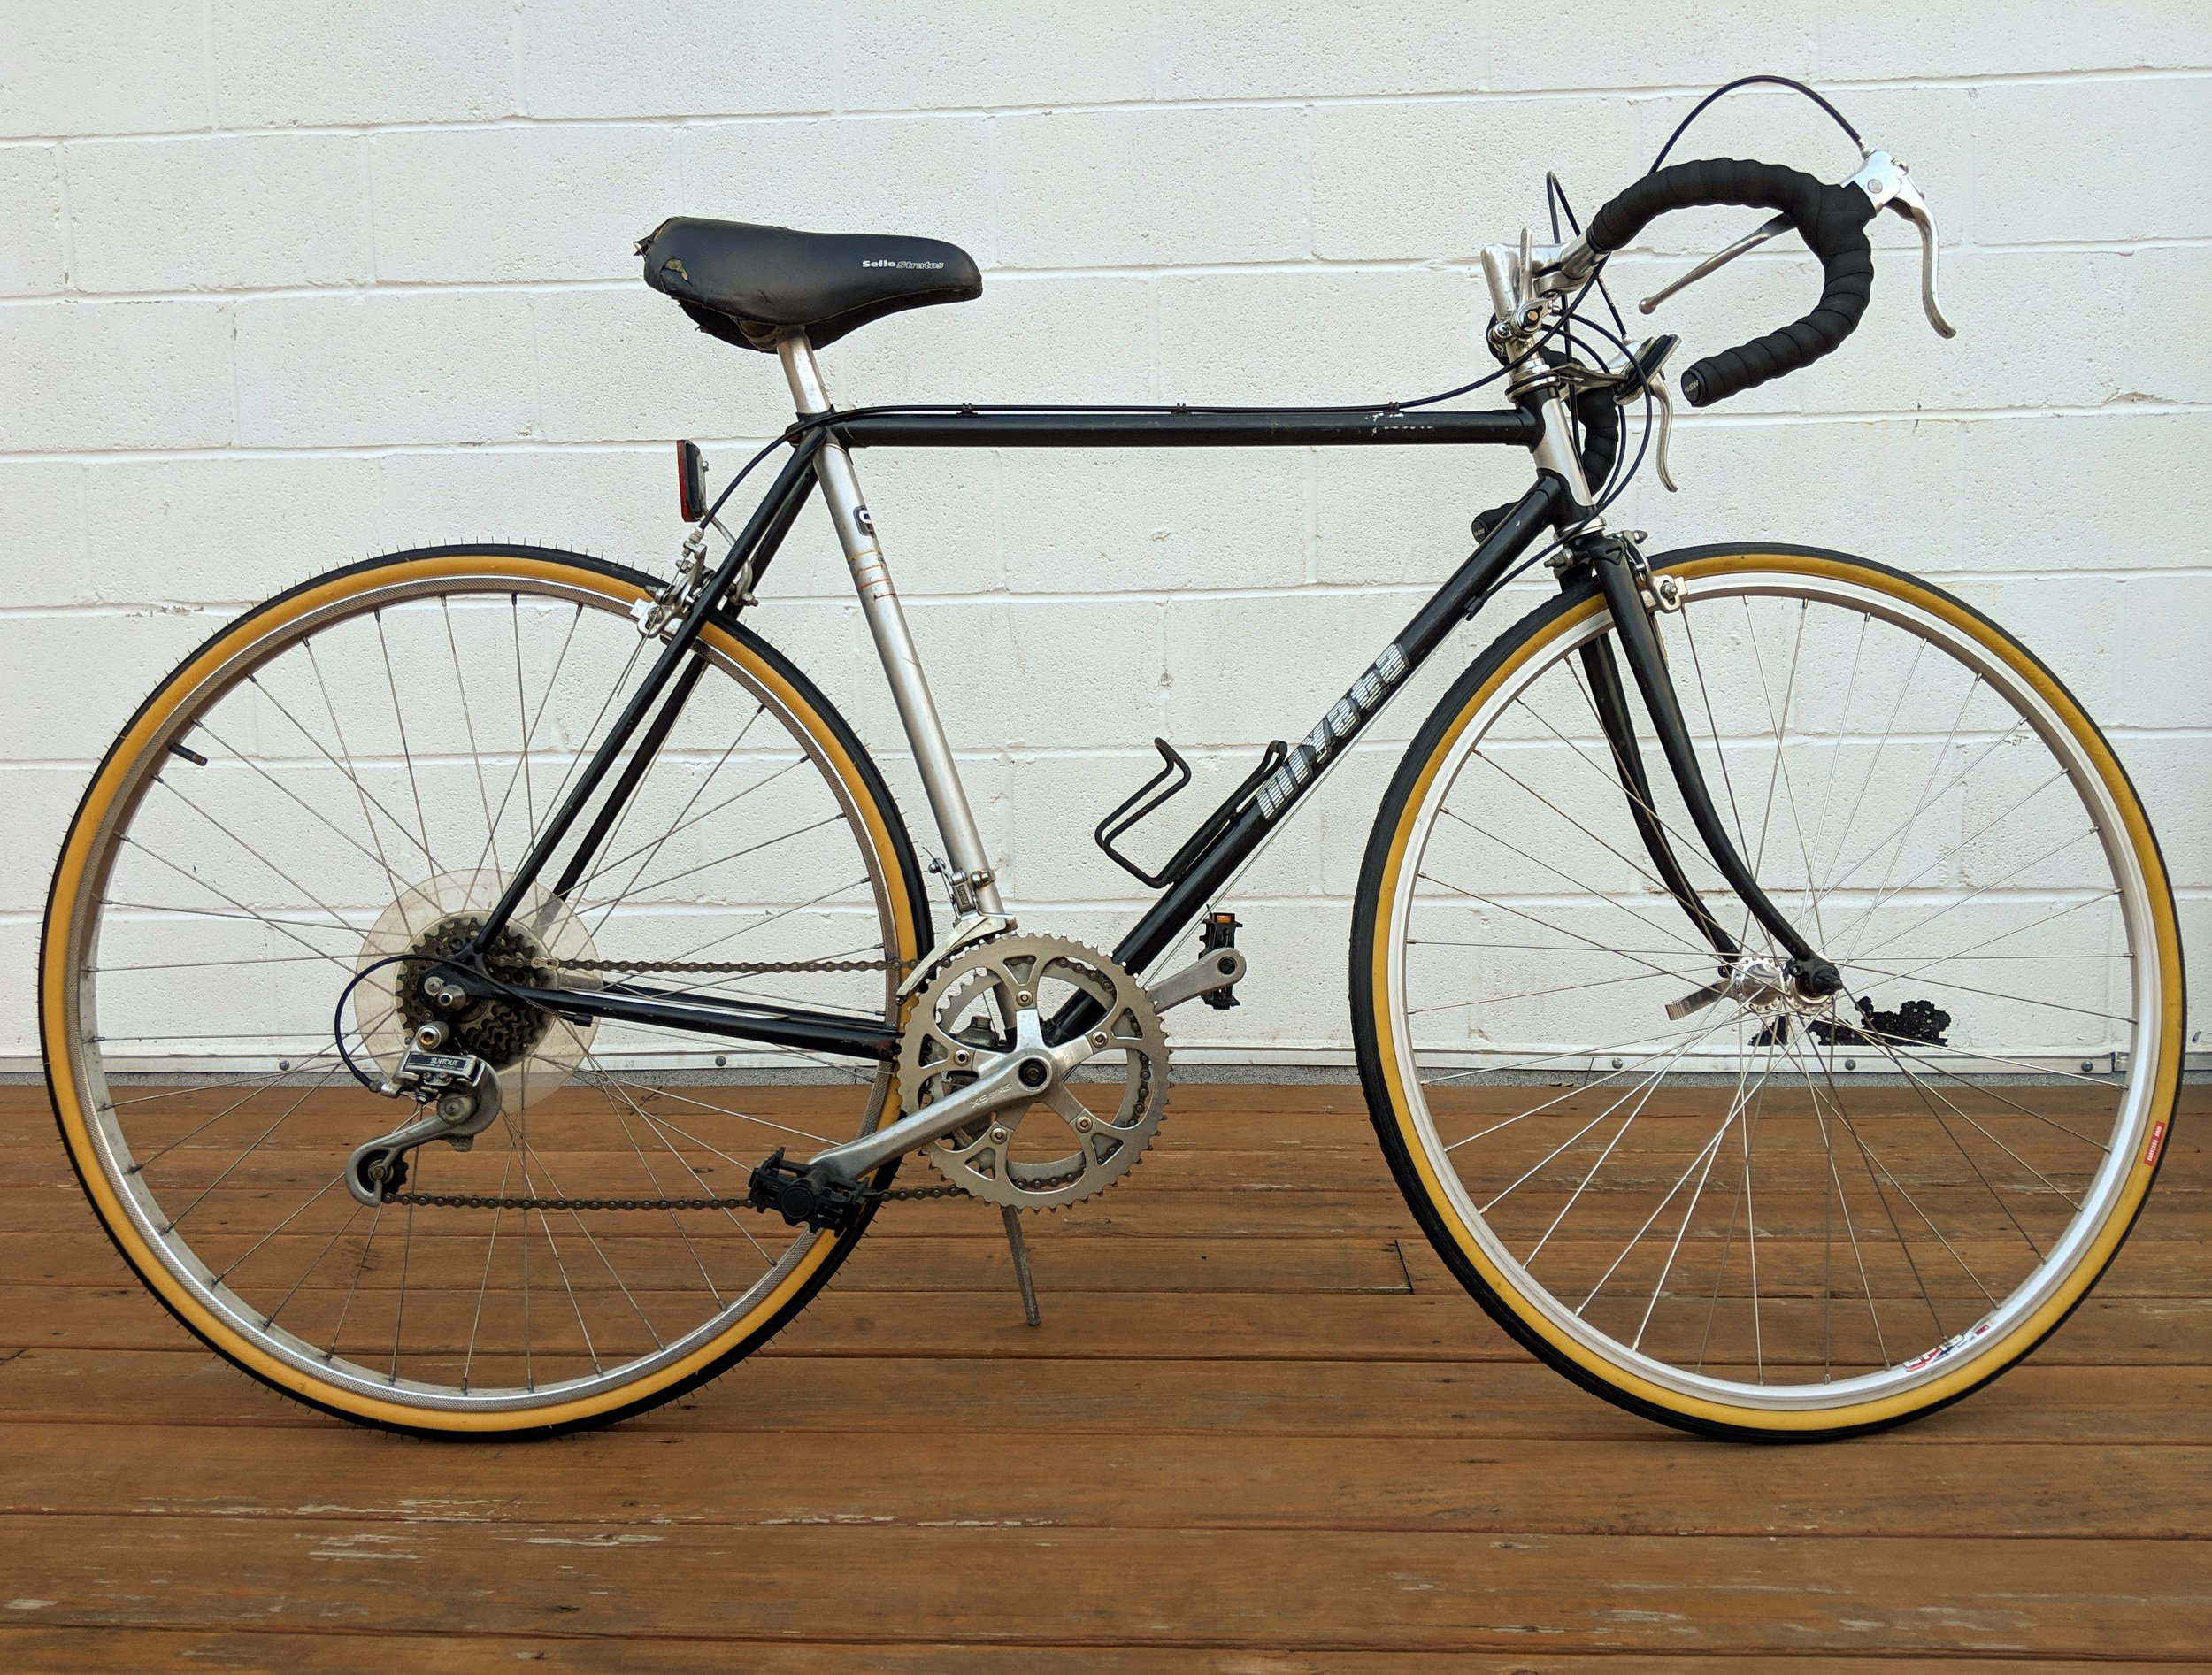 54cm Black and Silver Miyata